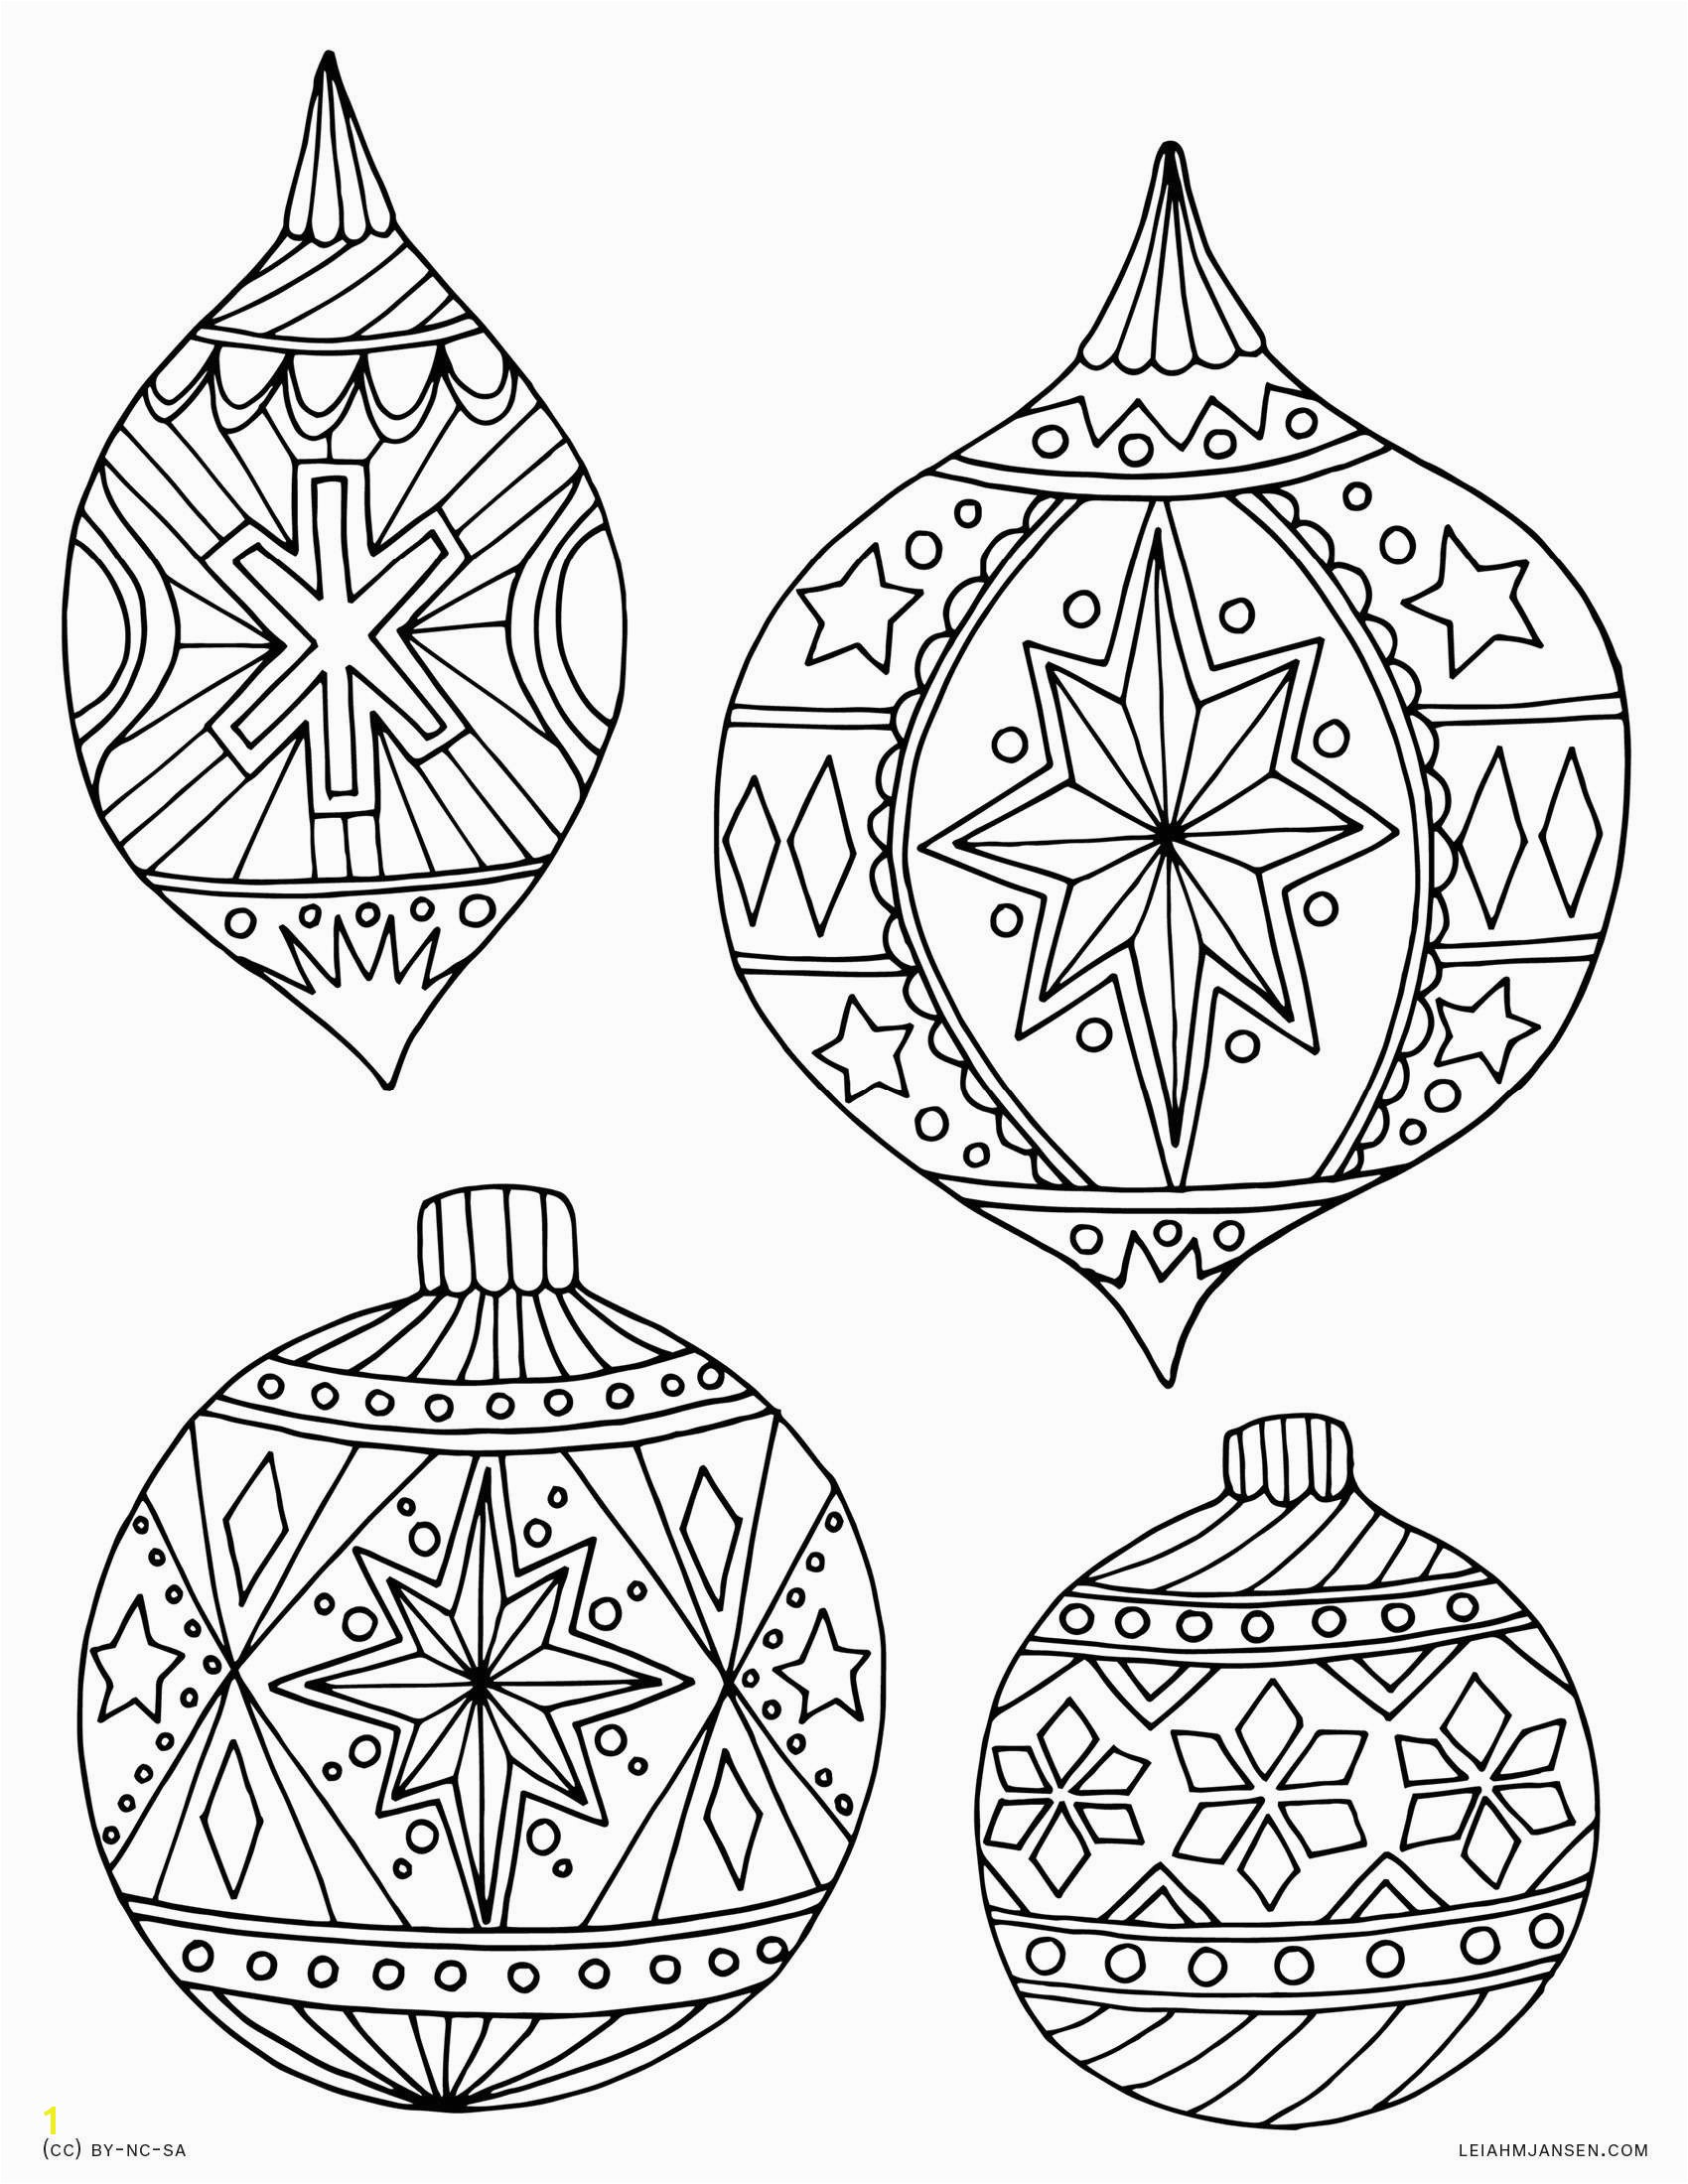 Coloring Worksheets Christmas Ornaments New Christmas Balls Coloring Pages Coloring Pages Christmas Ornaments